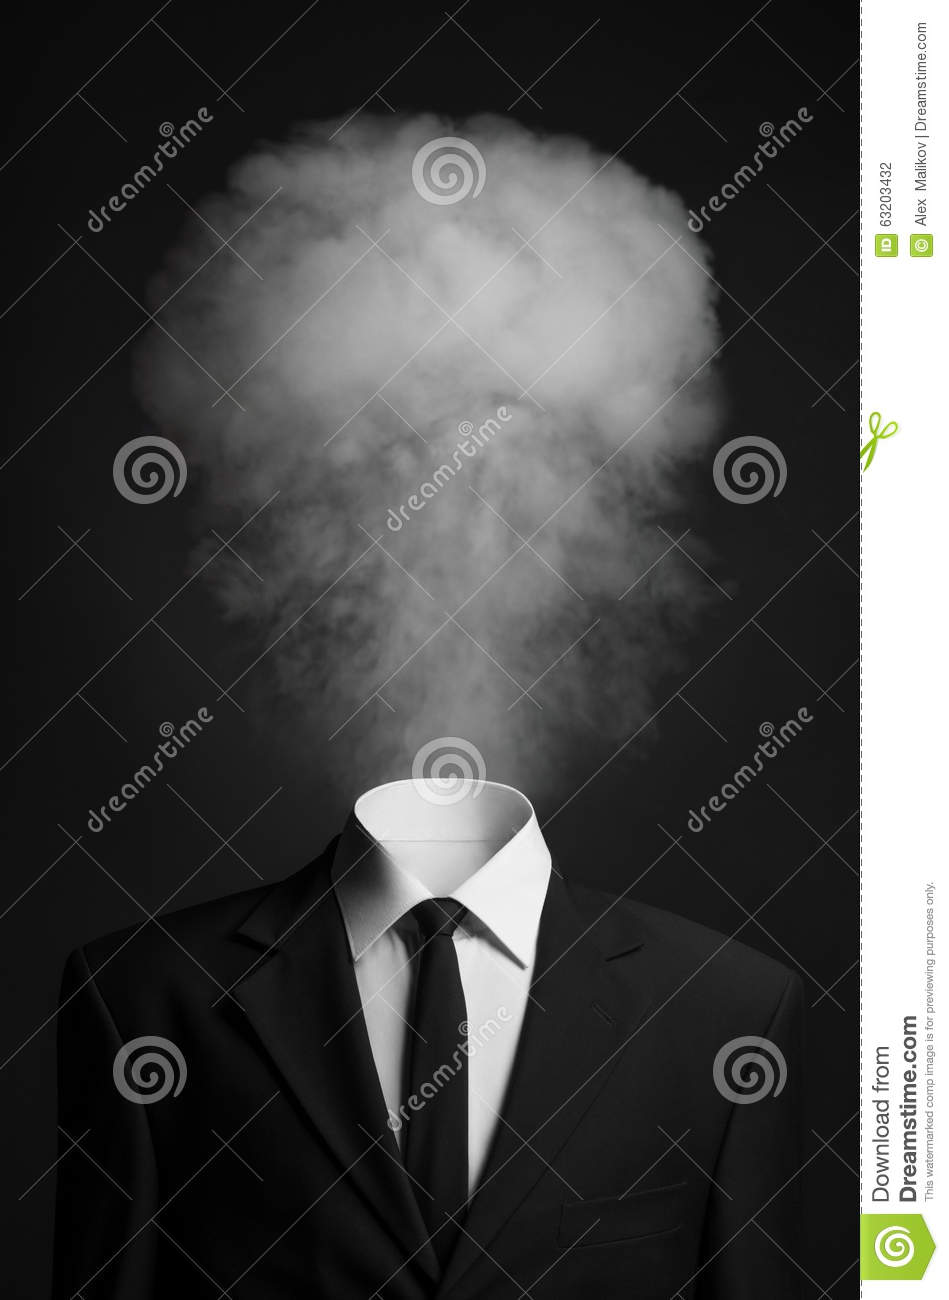 Surrealism and business topic: the smoke instead of a head man in a black suit on a dark background in the studio